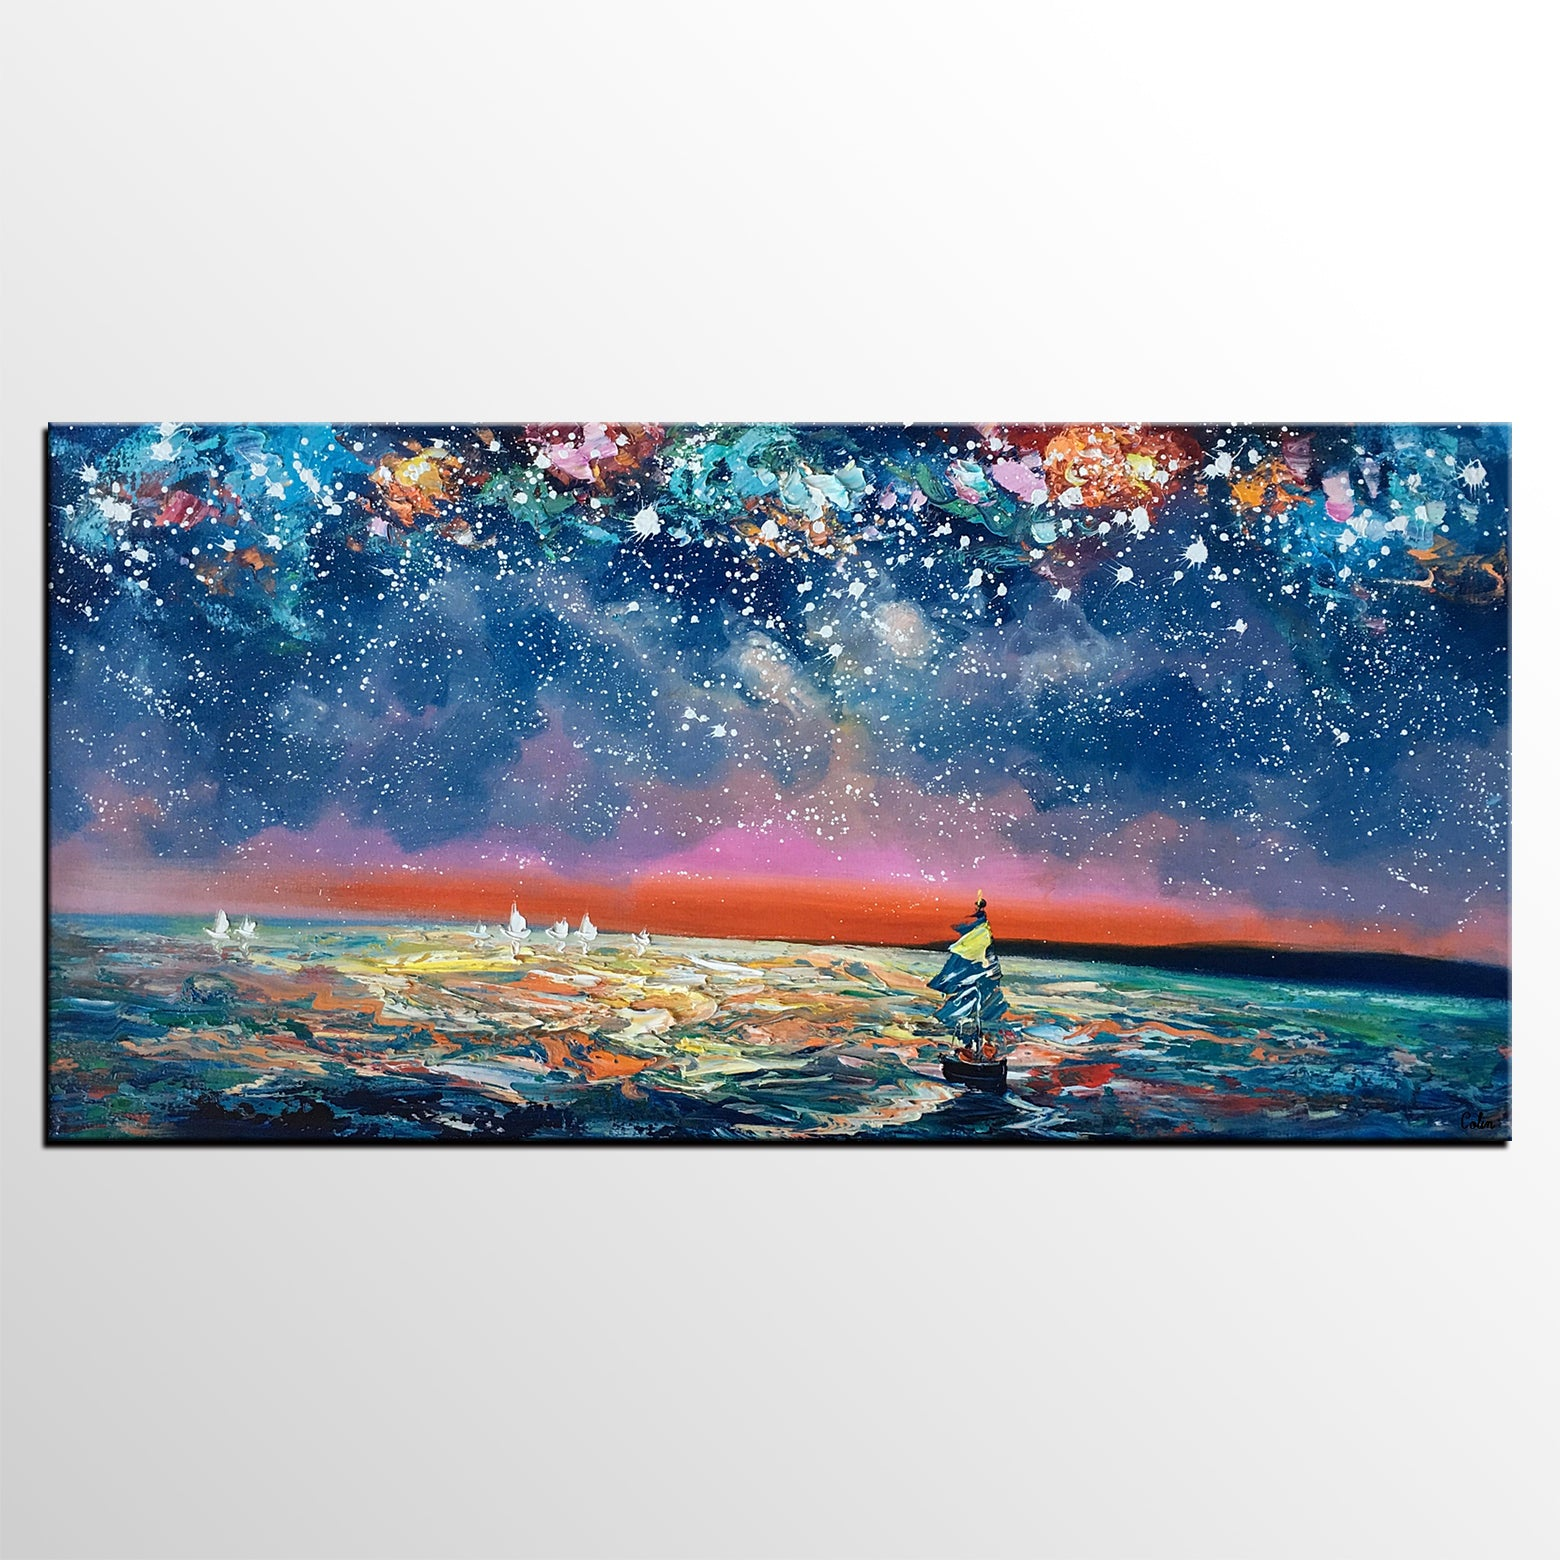 Canvas Wall Art, Sail Boad under Starry Night Painting, Seascape Painting,  Custom Large Canvas Wall Art, Original Artwork - artworkcanvas